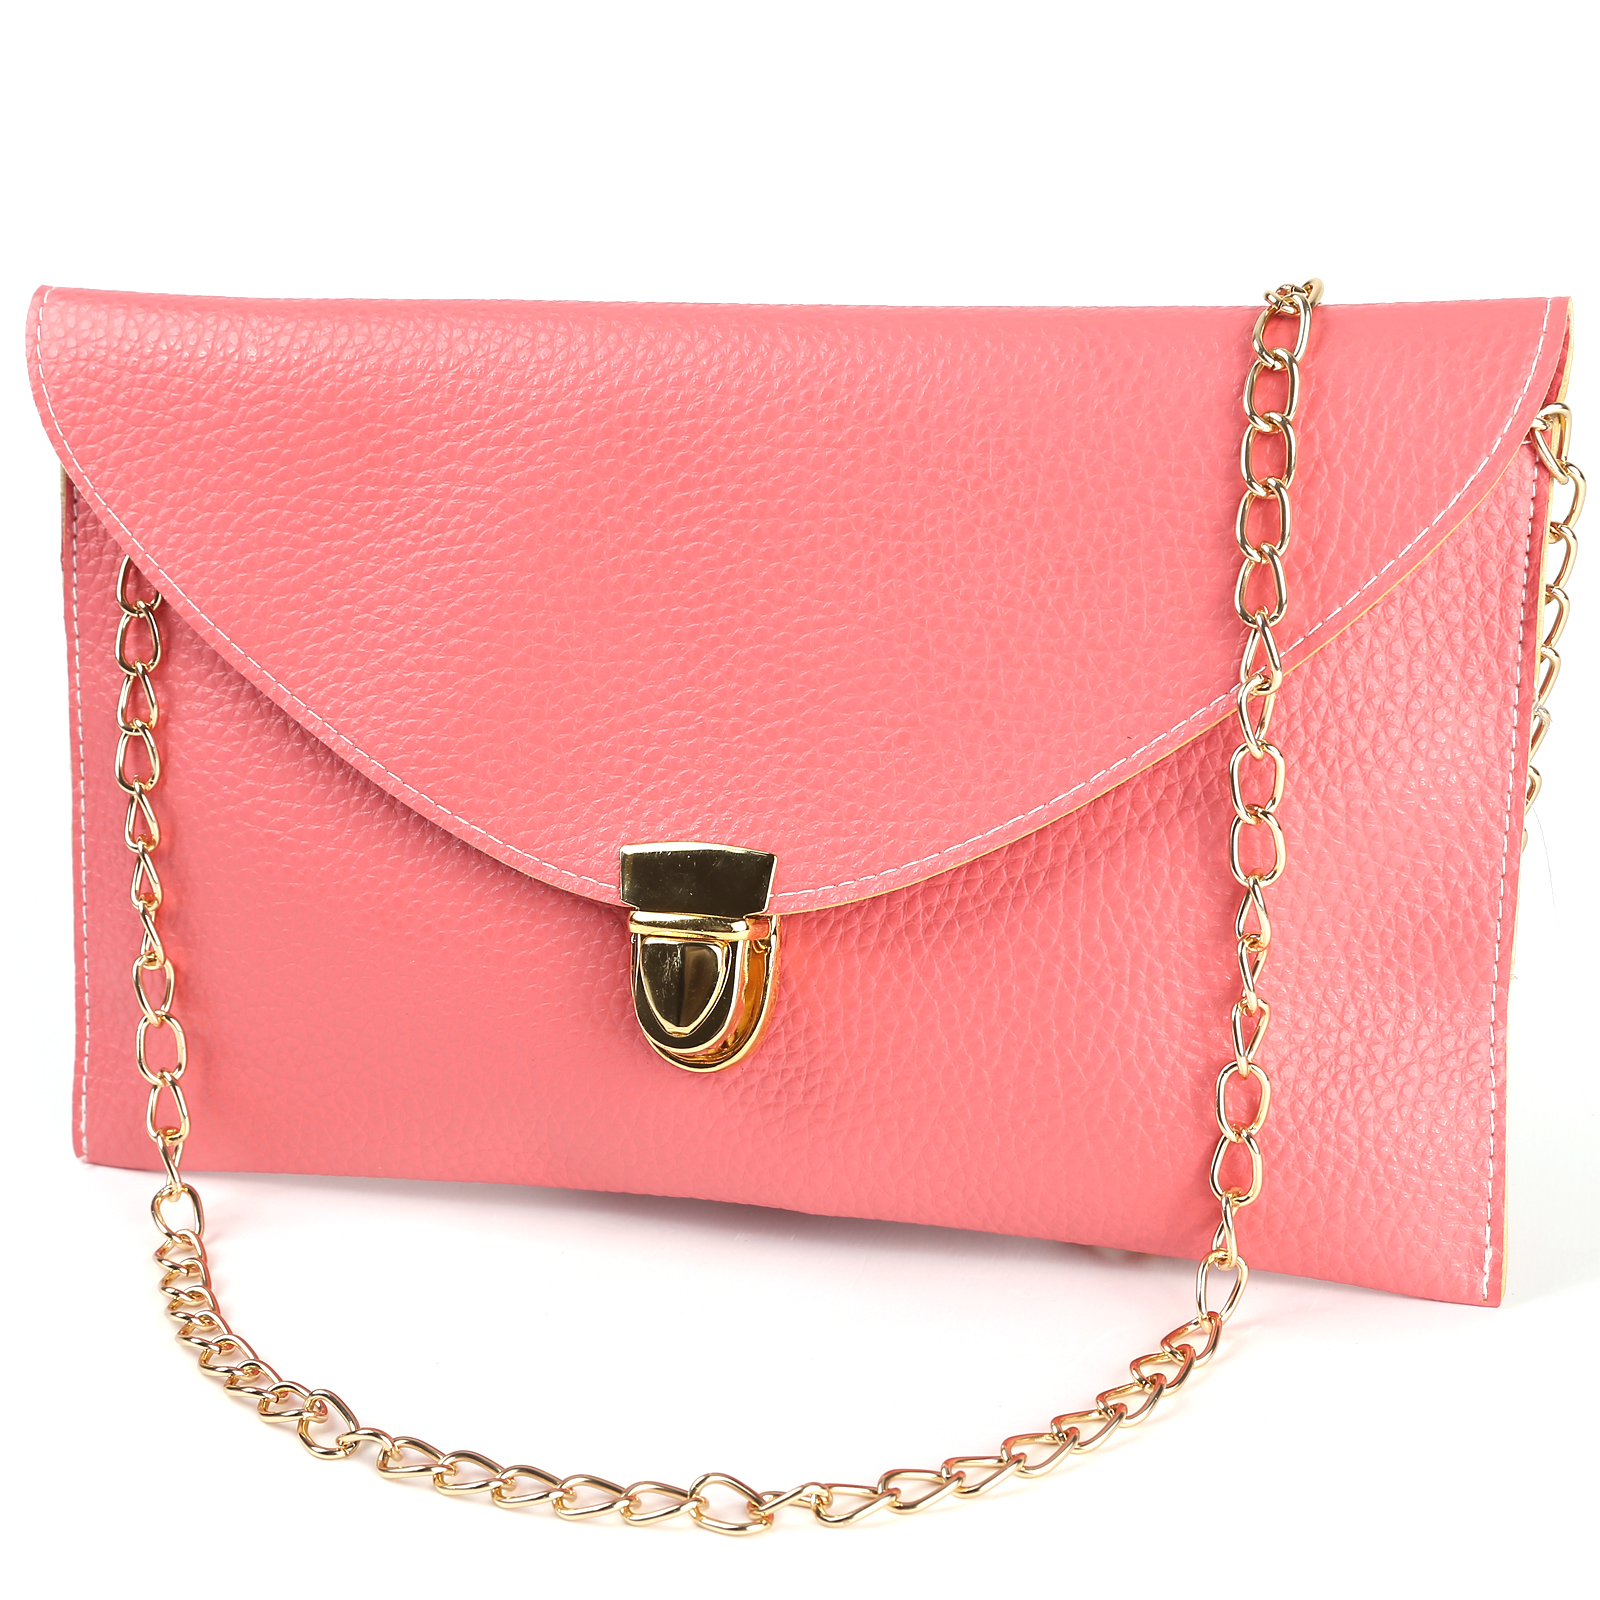 Sling bag on ebay -  Ladies Salmon Envelope Shoulder Bag Clutch Chain Purse